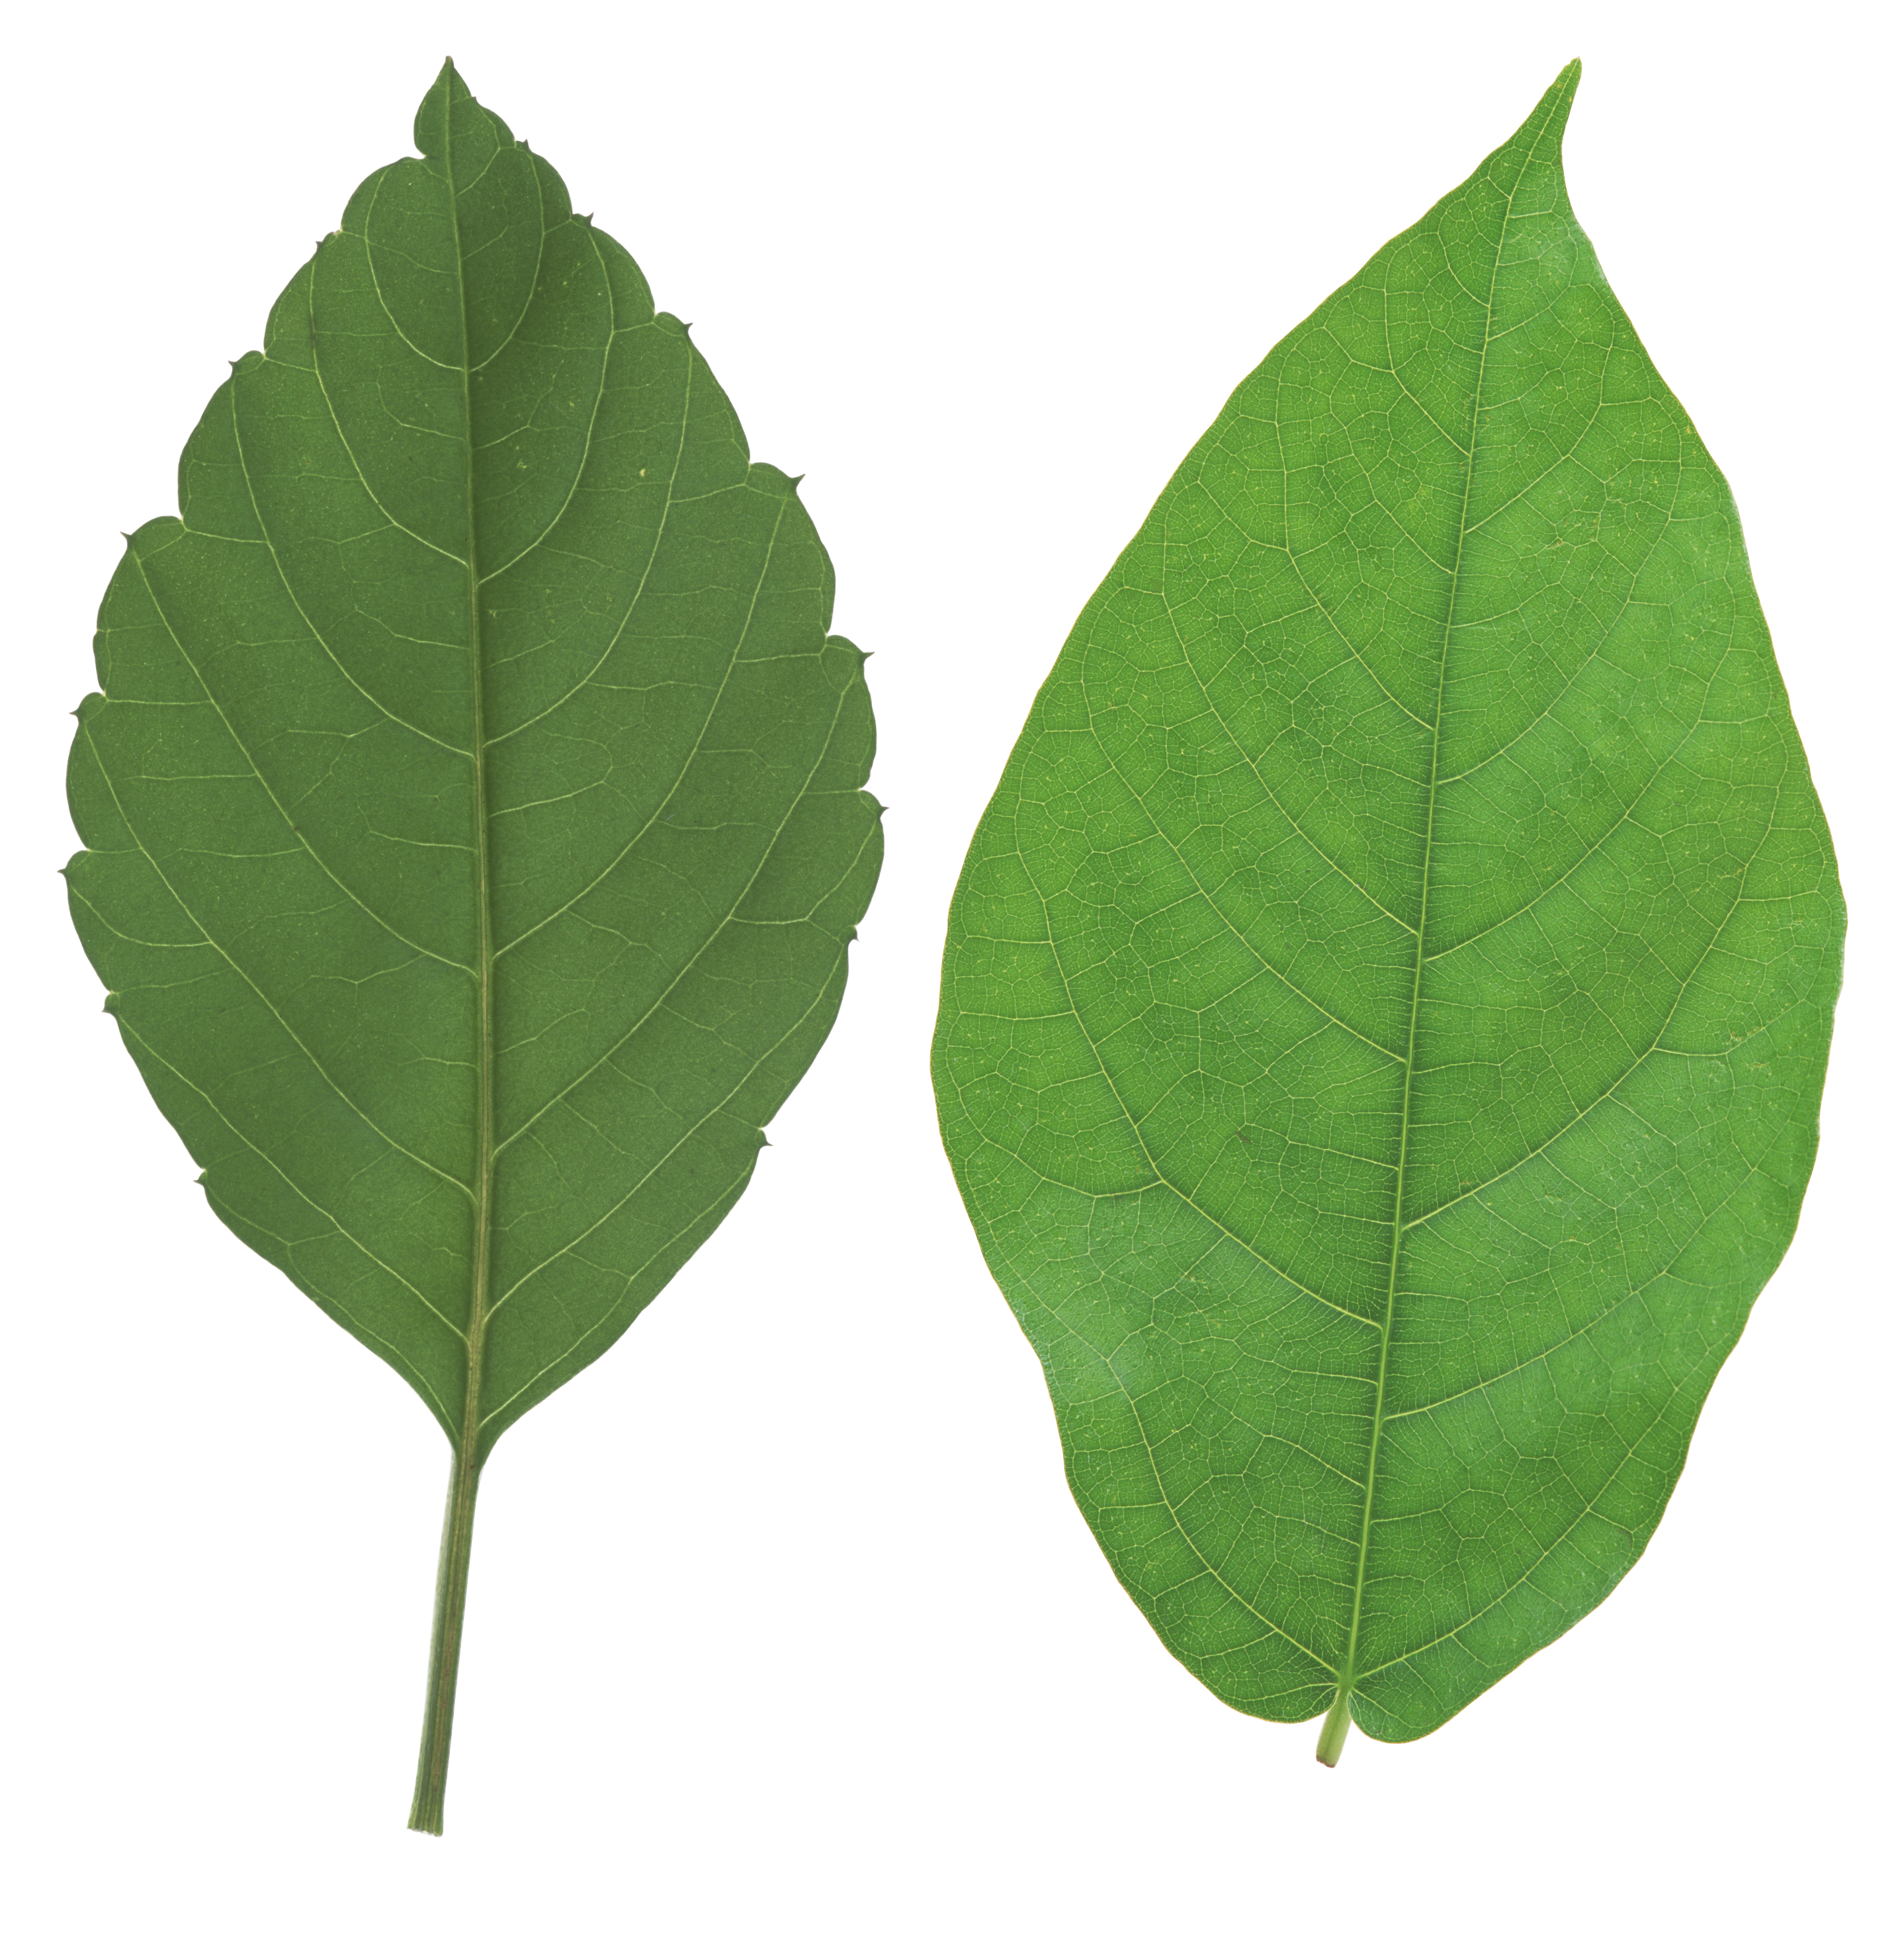 Green leaves images free. Leaf png image library download